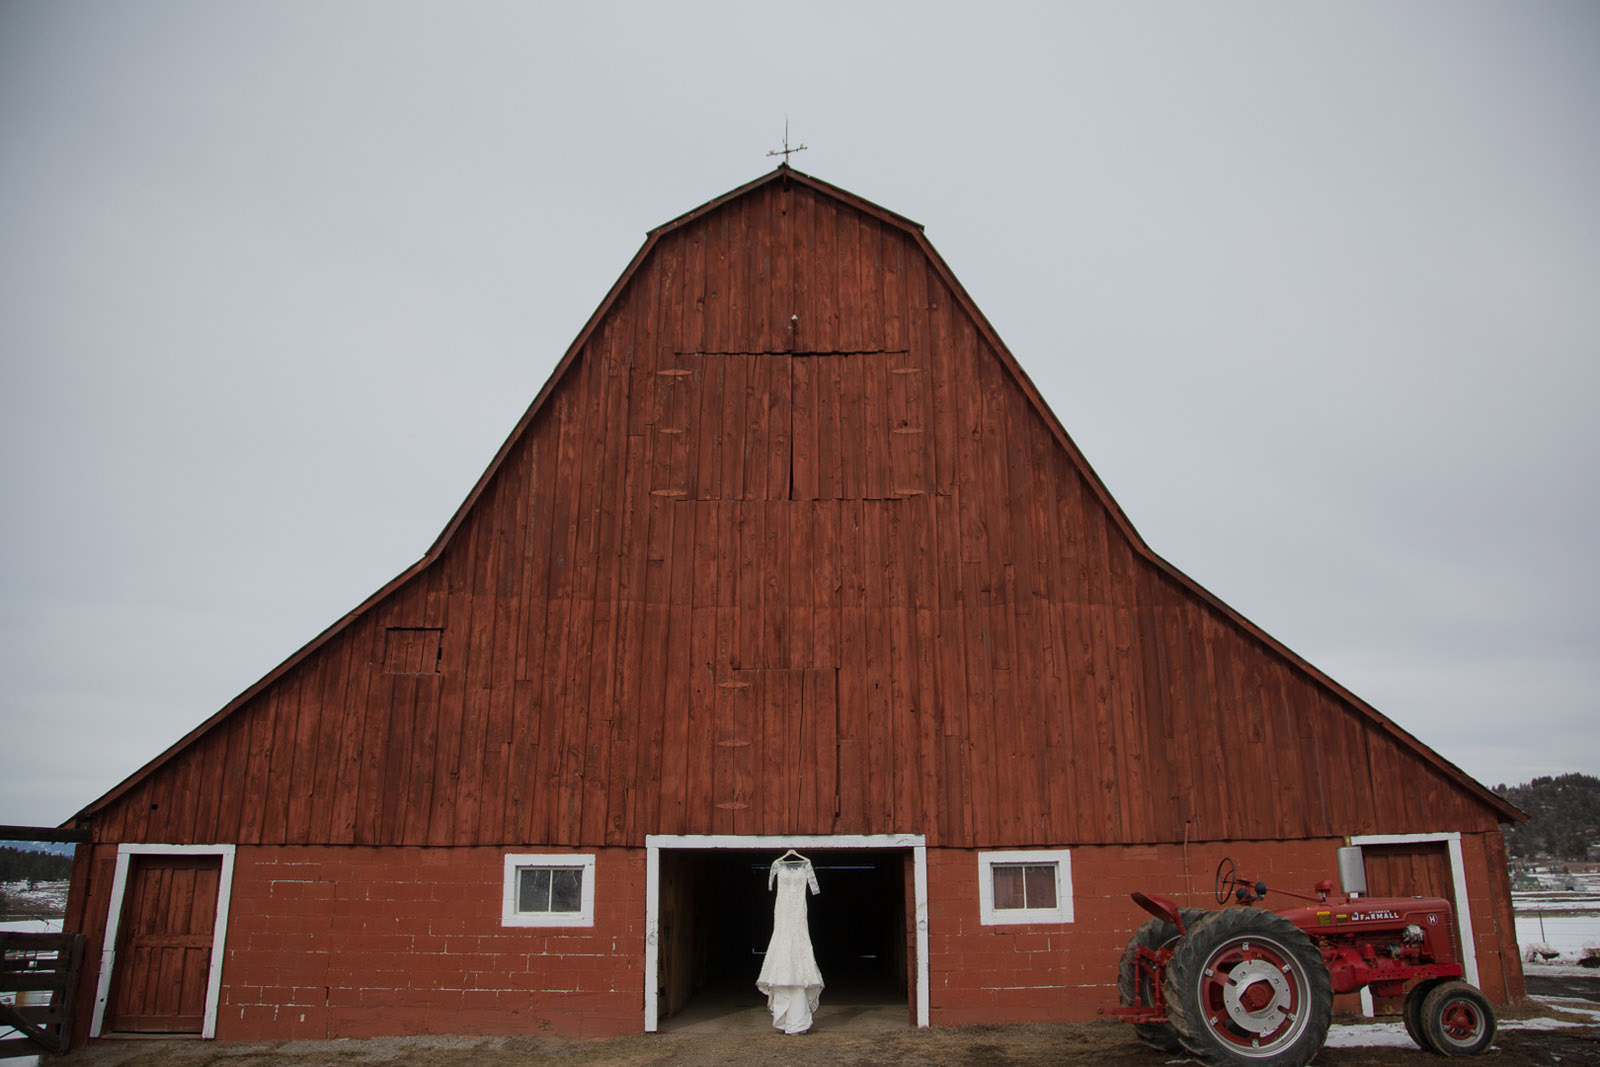 028-wedding-dress-in-red-barn-hanging-for-style-in-pagosa-springs-colorado-for-mirabal-photography